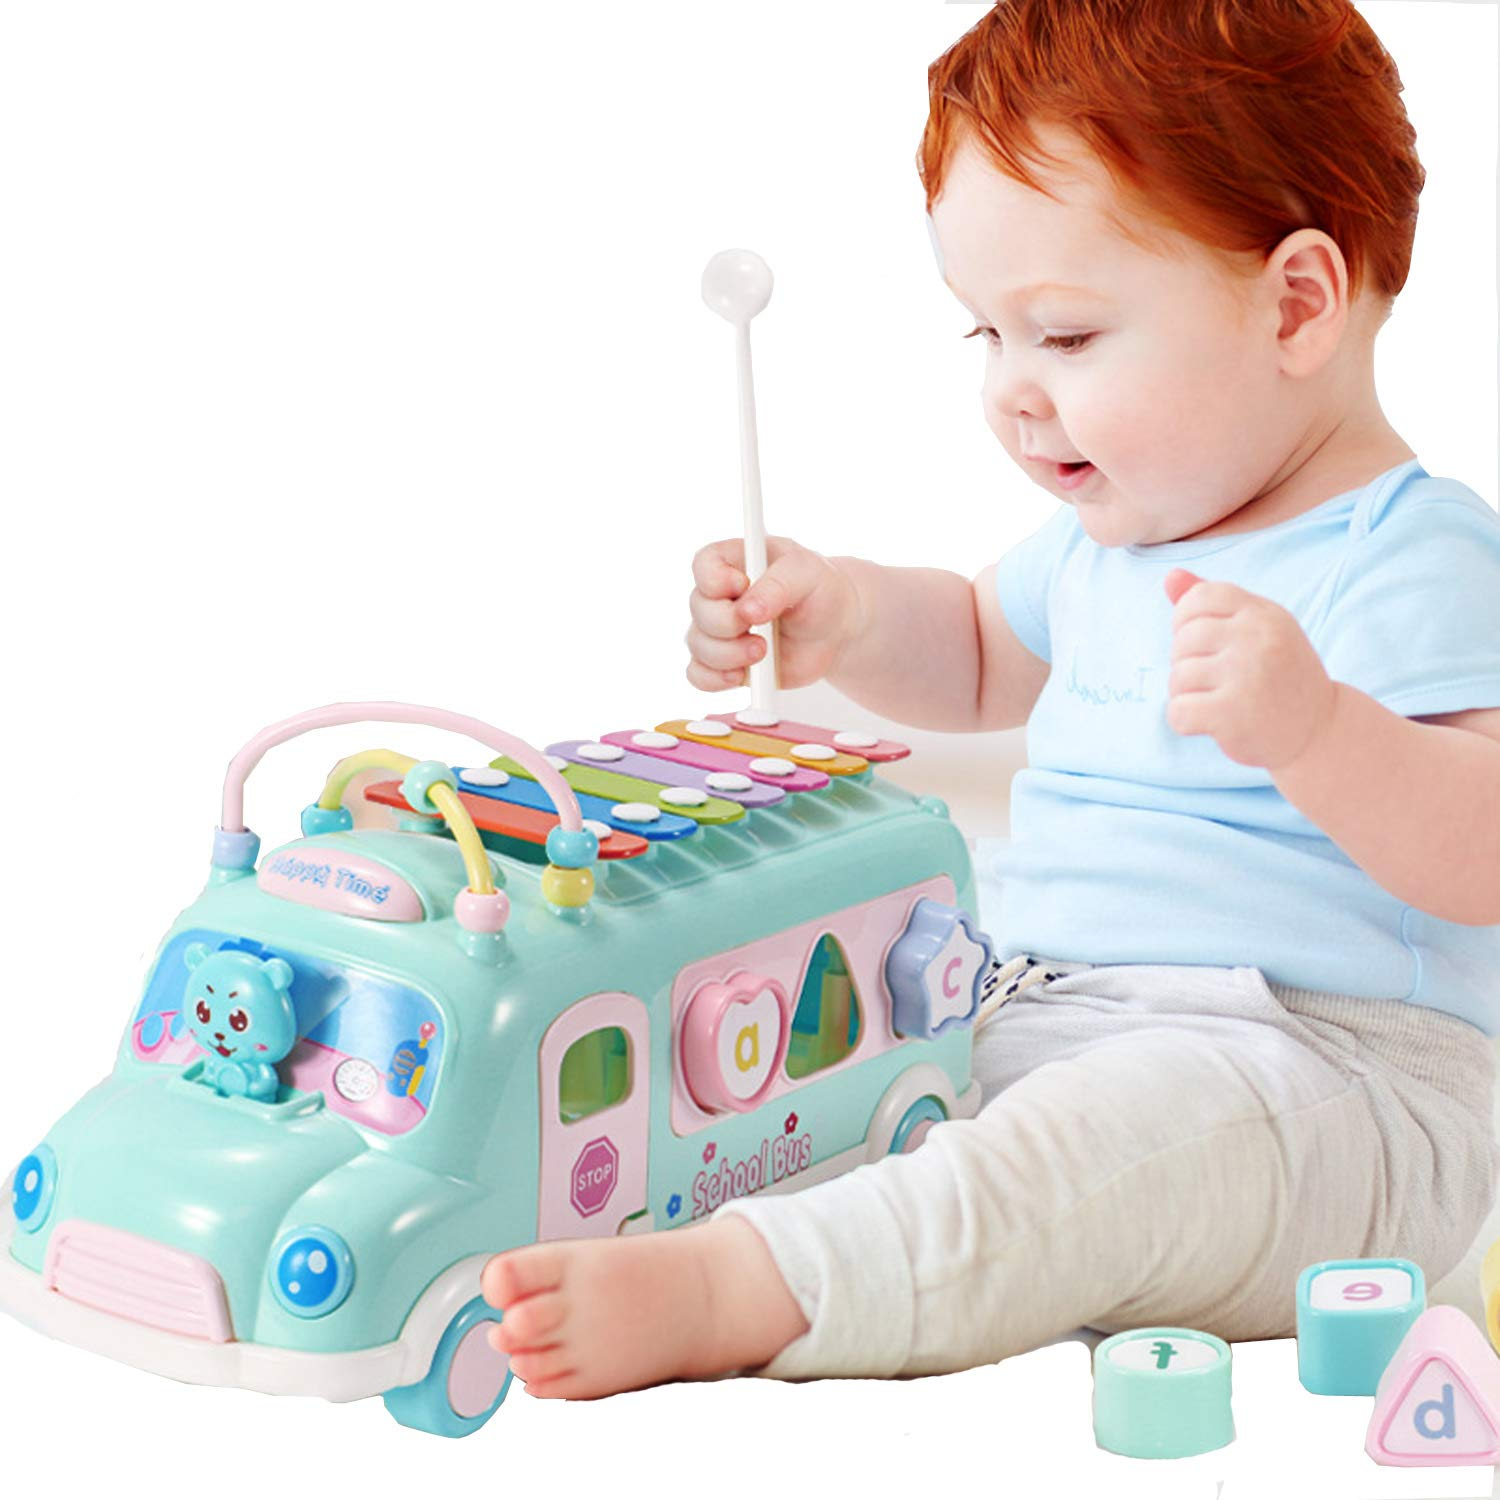 Toys Xylophone For Baby Toddler Kid Boy Girl 1 2 3 4 5 Year Old Xylophone Musical Instruments Dragging Educational Learning Toys Bus Vehicle Car Intellectual Dragging Toy Playset Alphabet Gift Idea